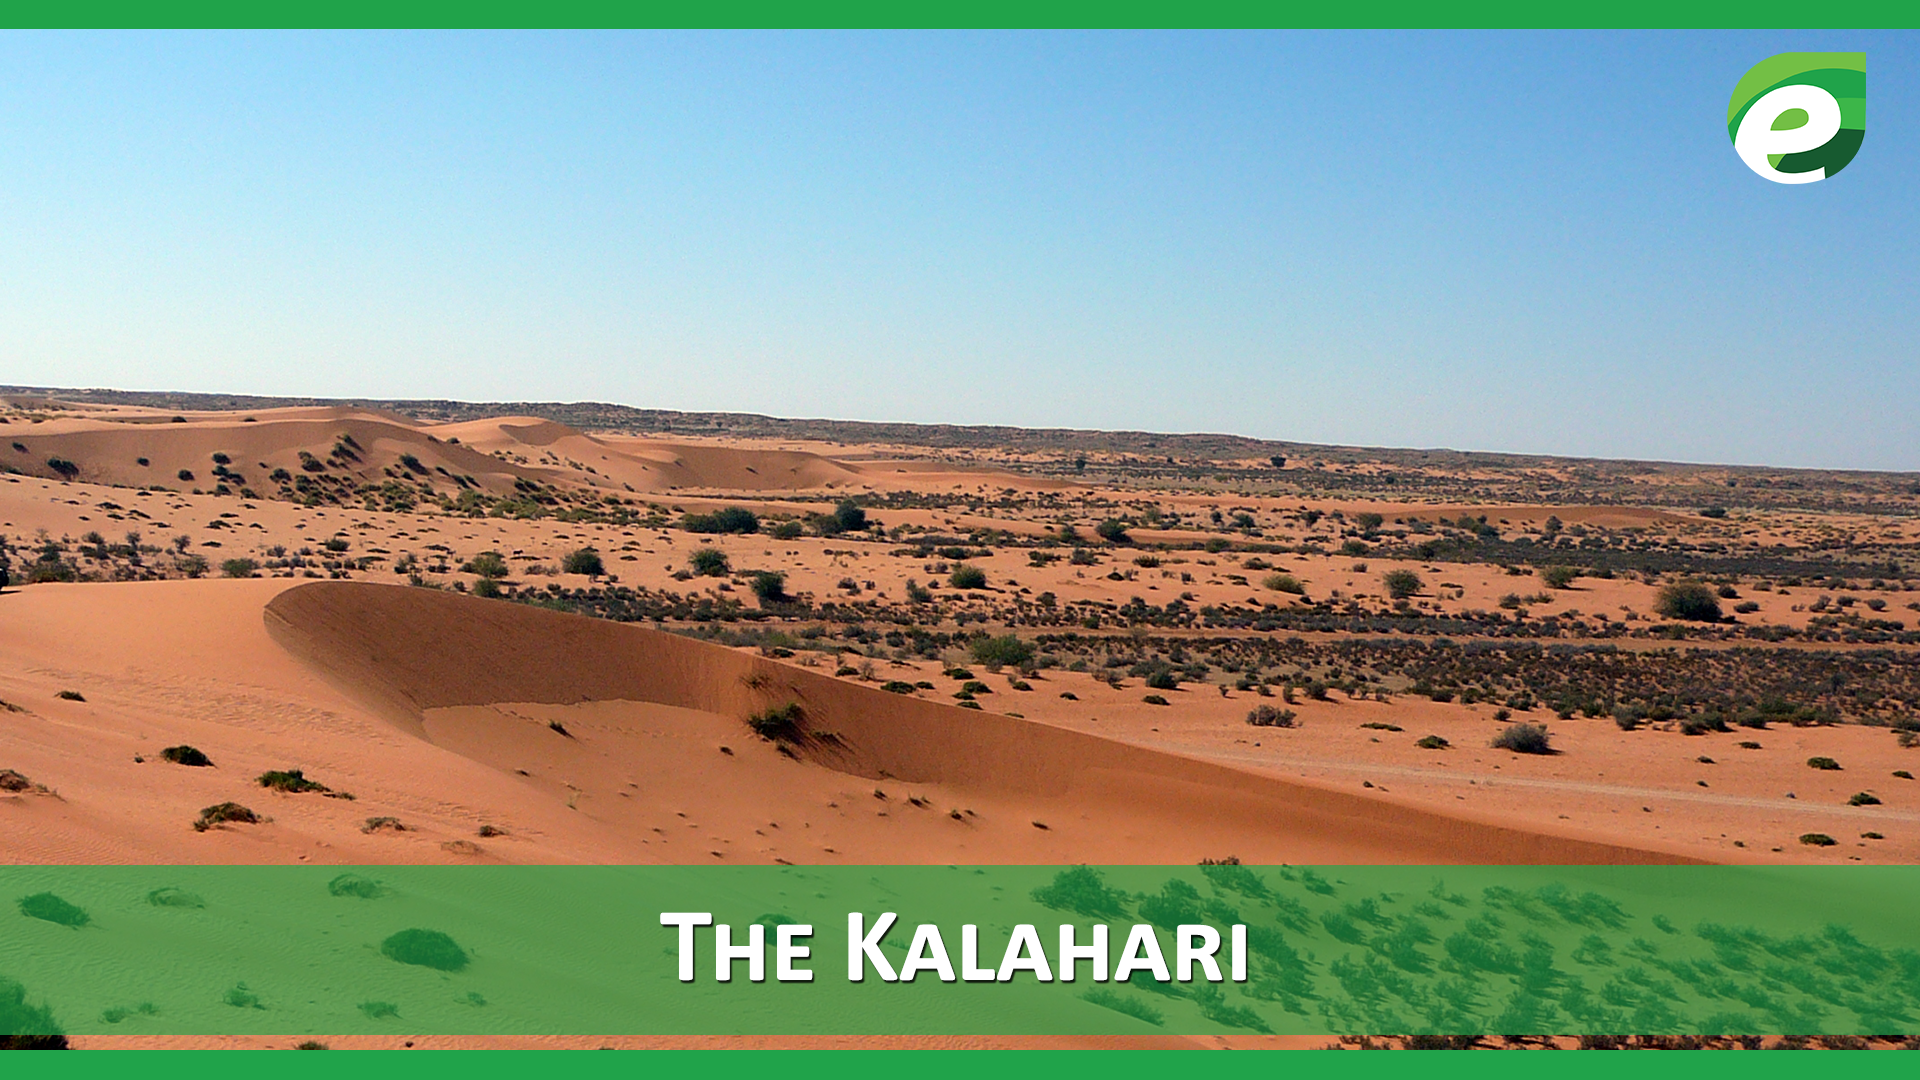 Hottest Deserts of the World- The Kalahari